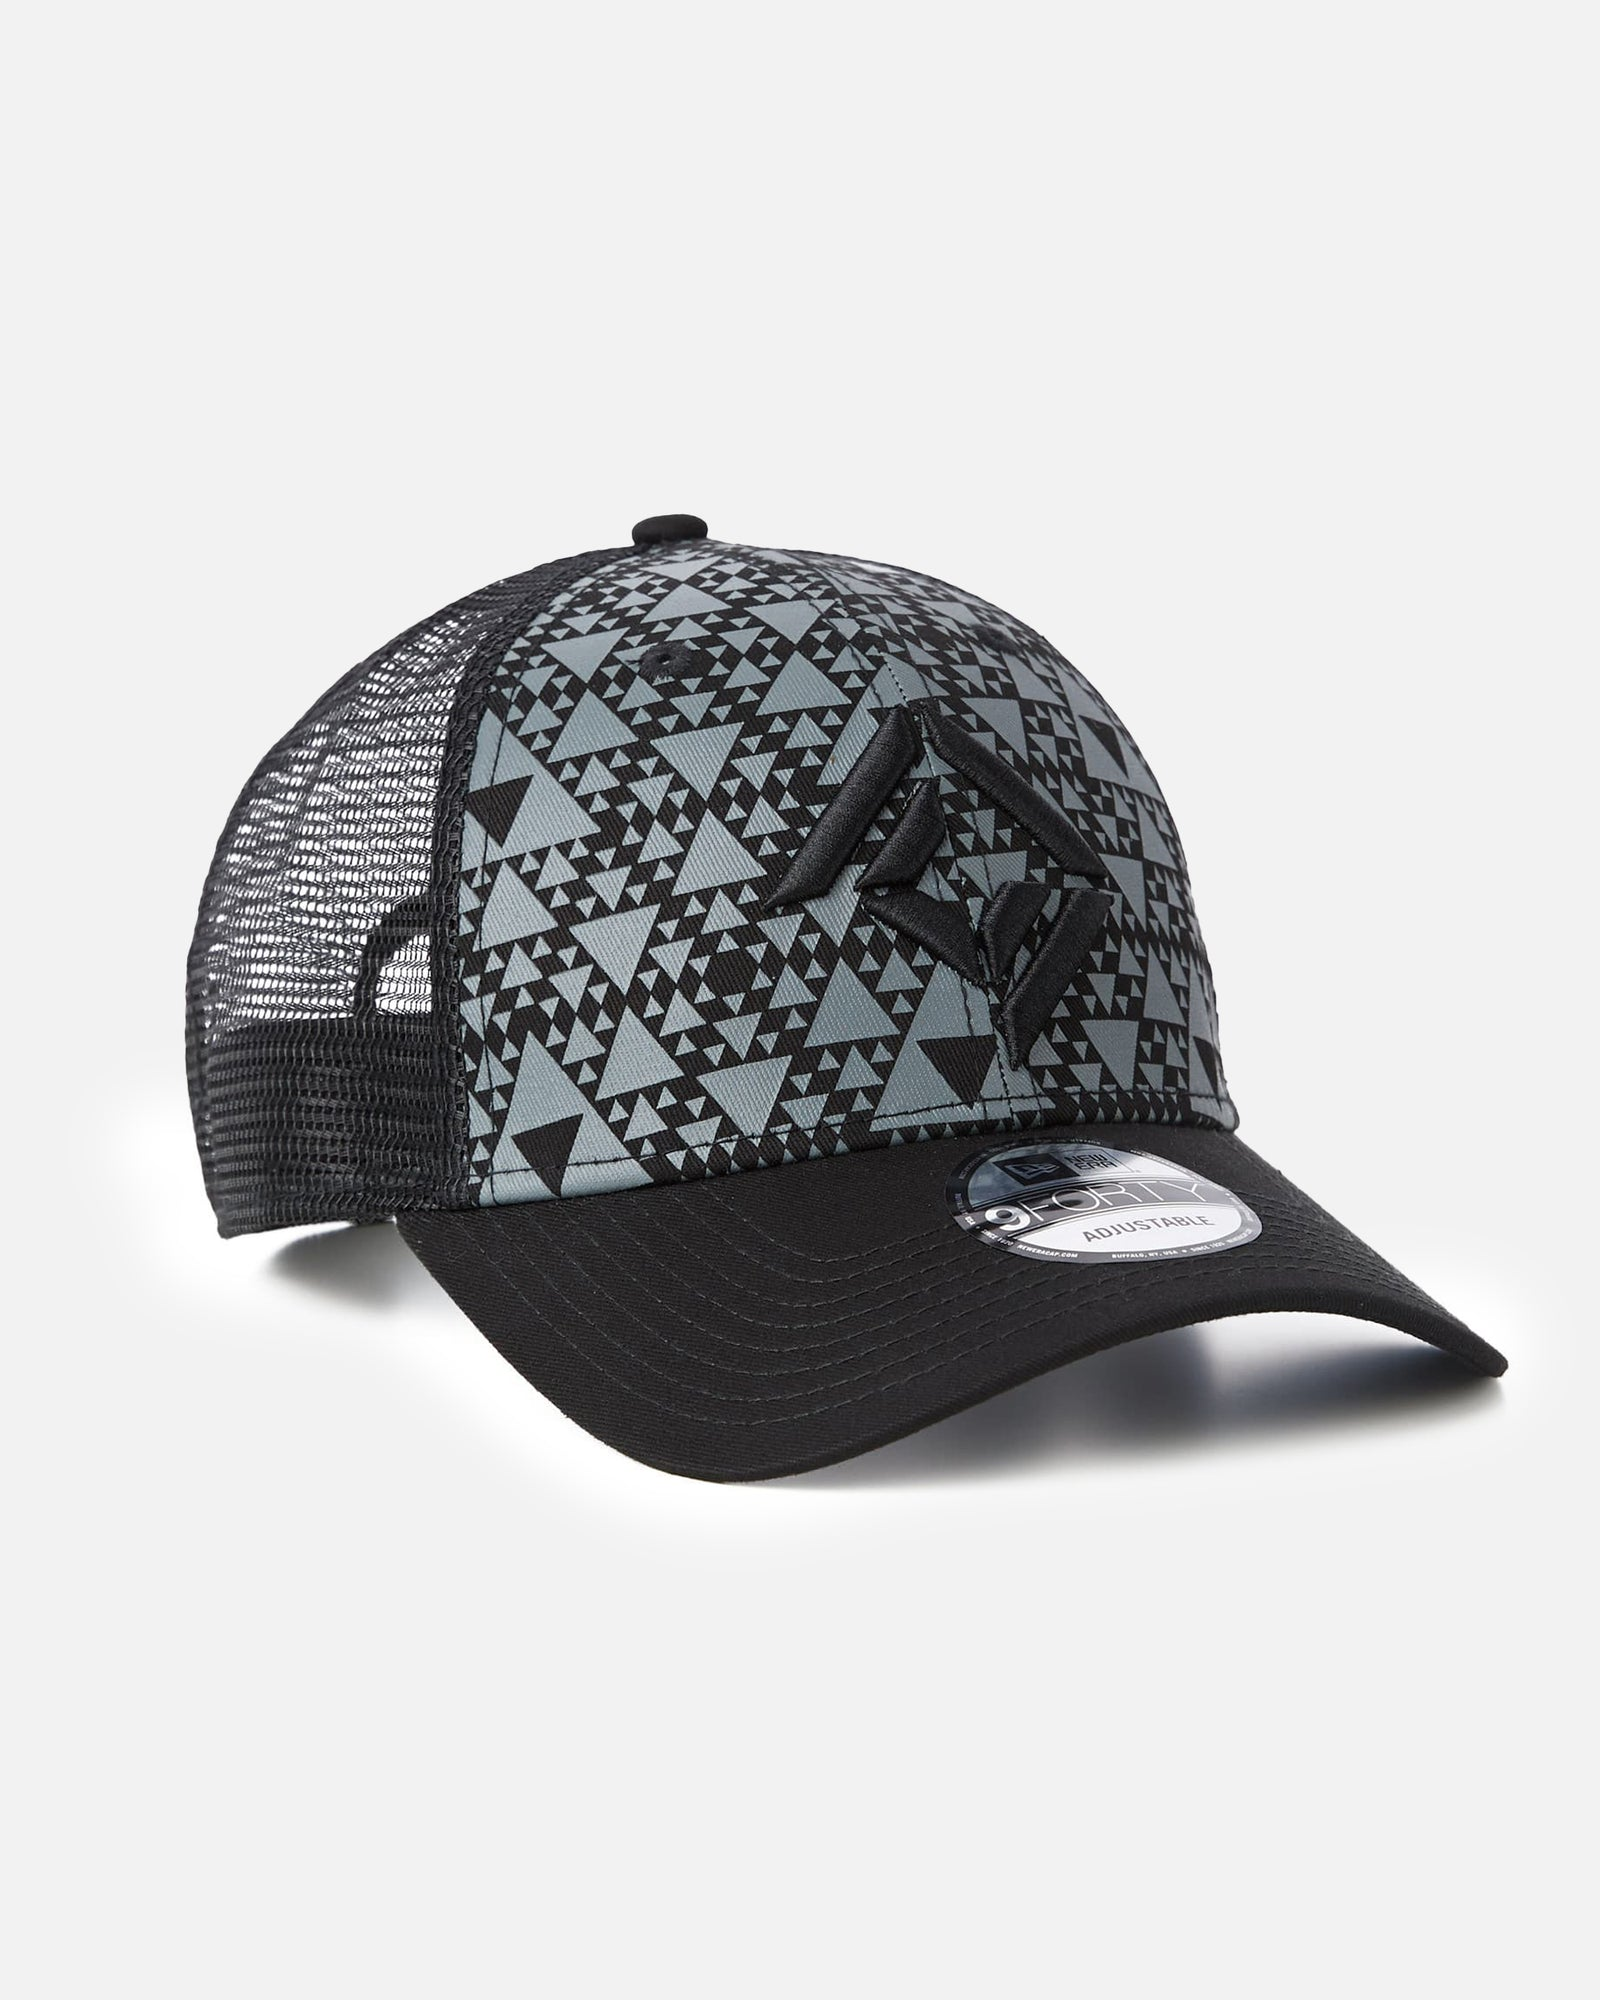 Corridor Digital x New Era 'Logo' 9Forty Motion Capture Trucker Hat